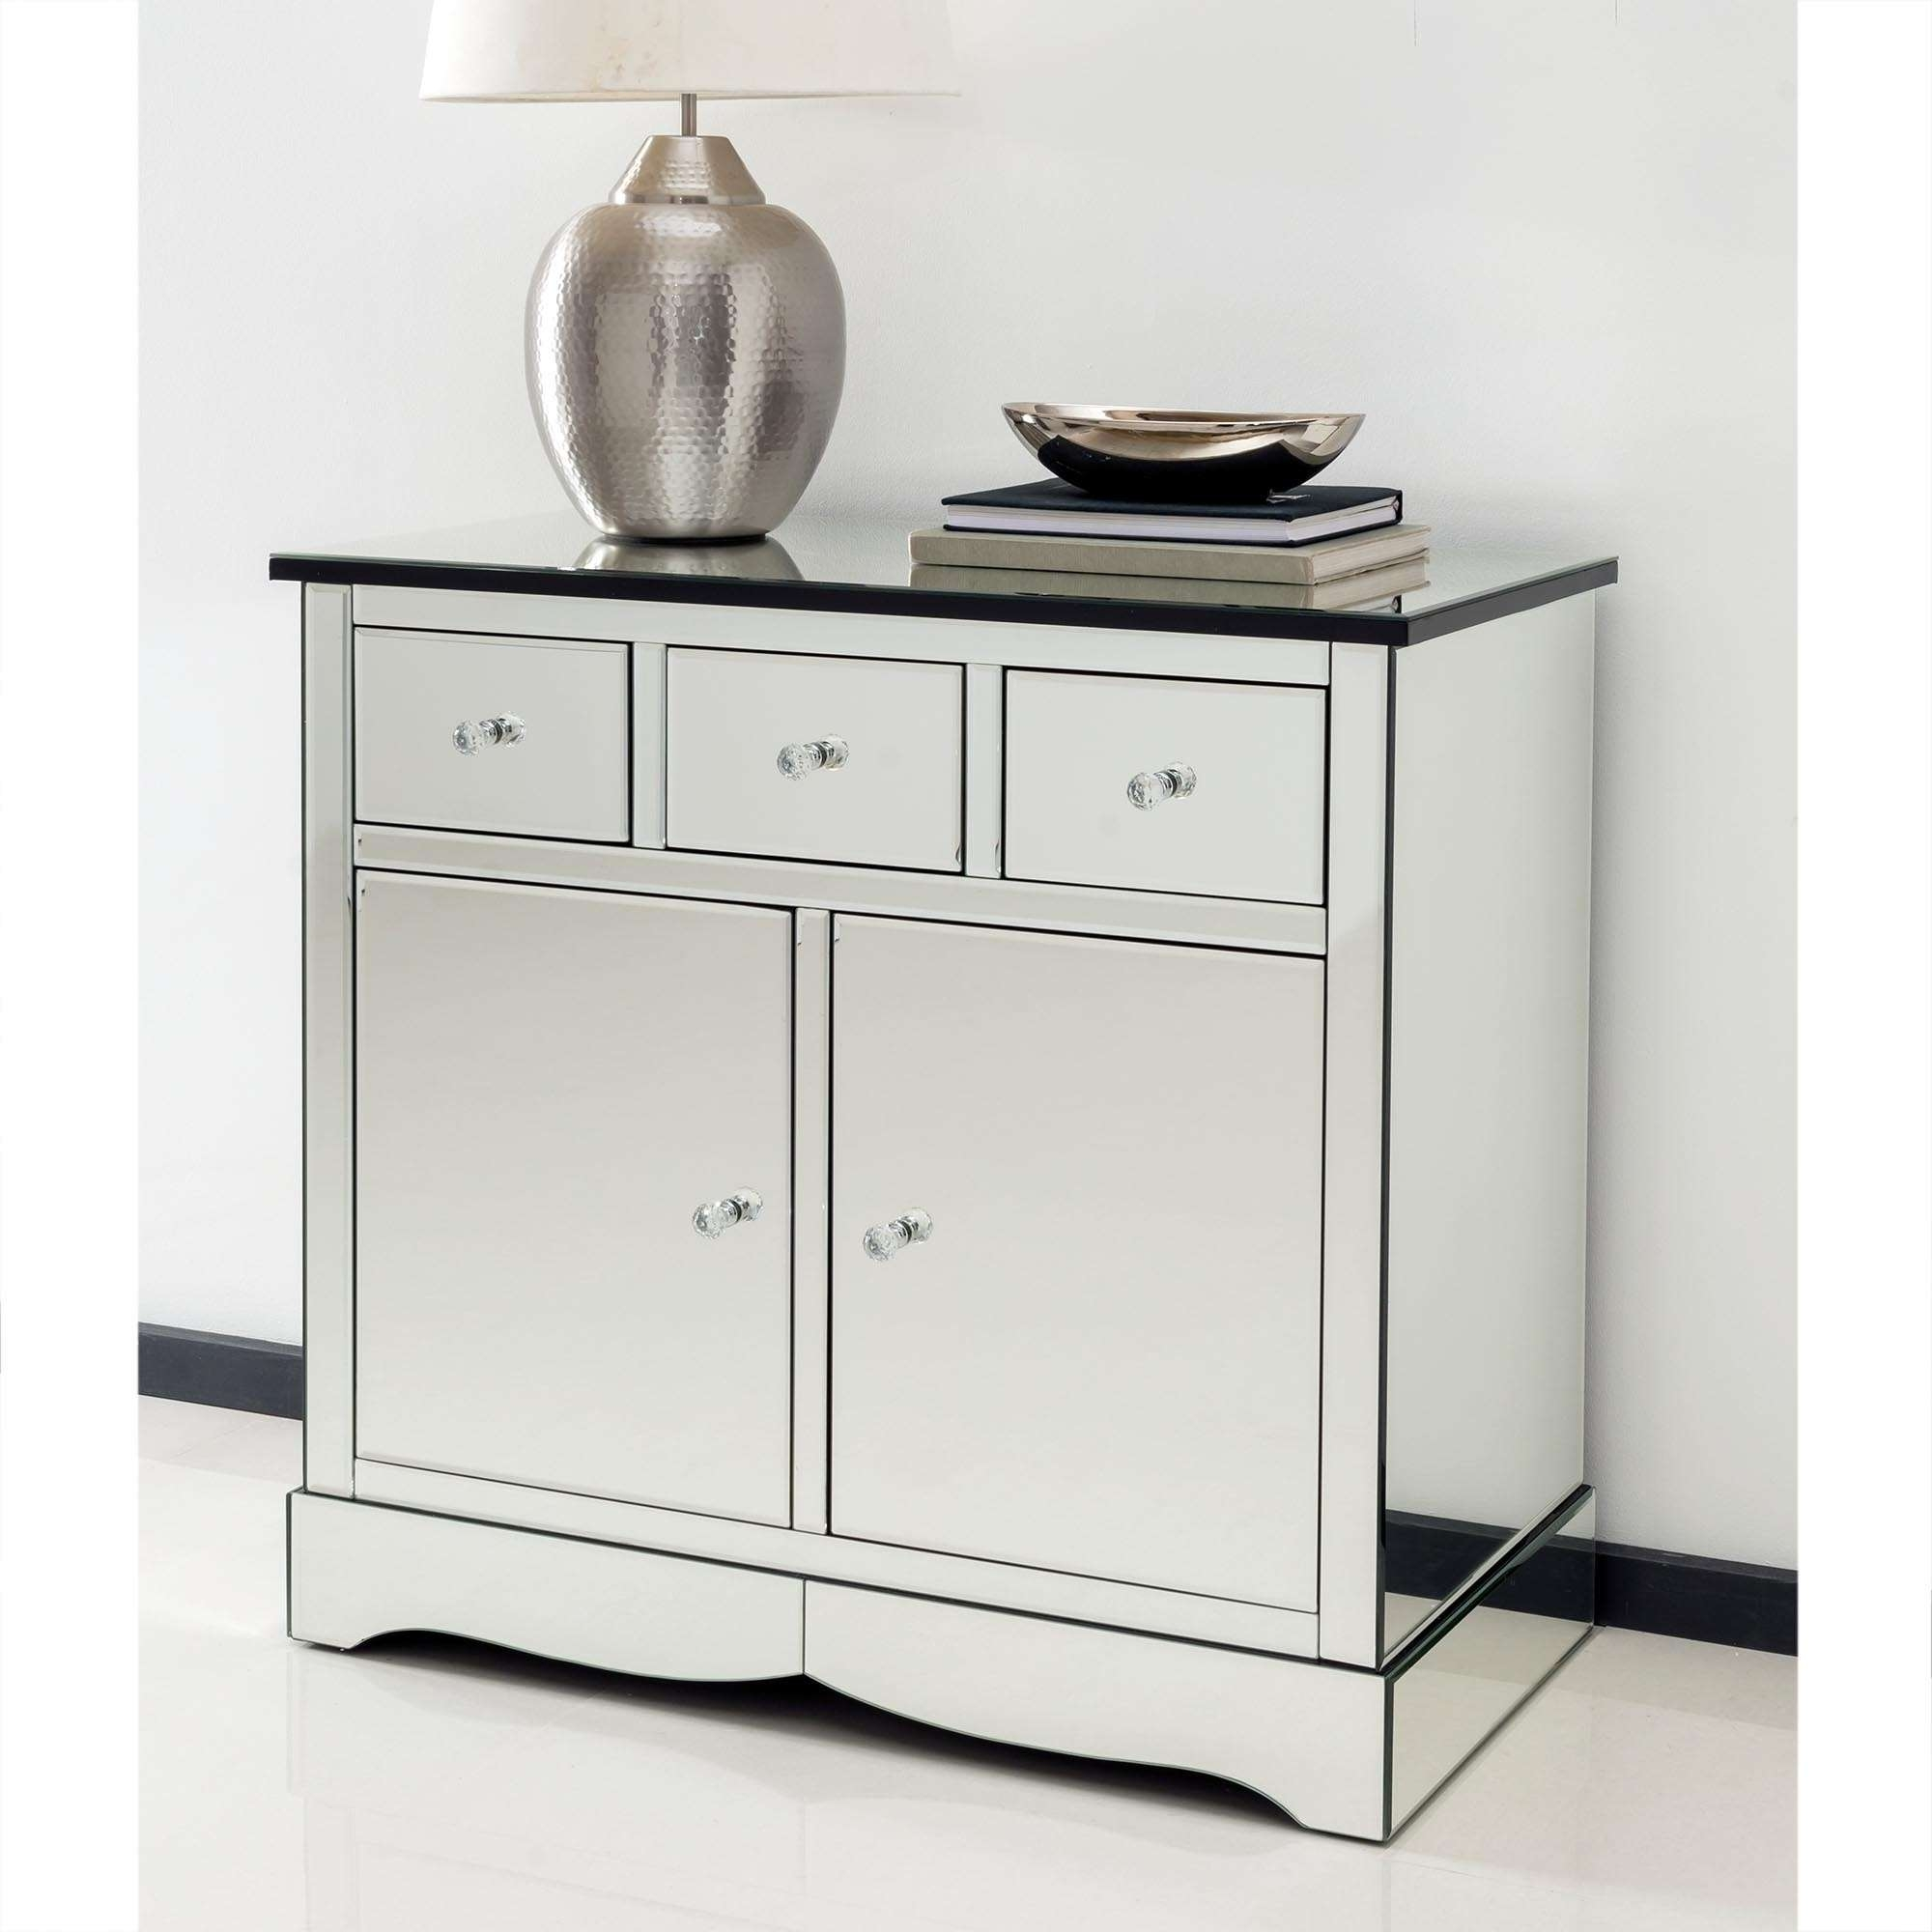 Romano Crystal Mirrored Cabinet With Cupboards & Drawers – French Throughout Mirrored Sideboards (View 16 of 20)